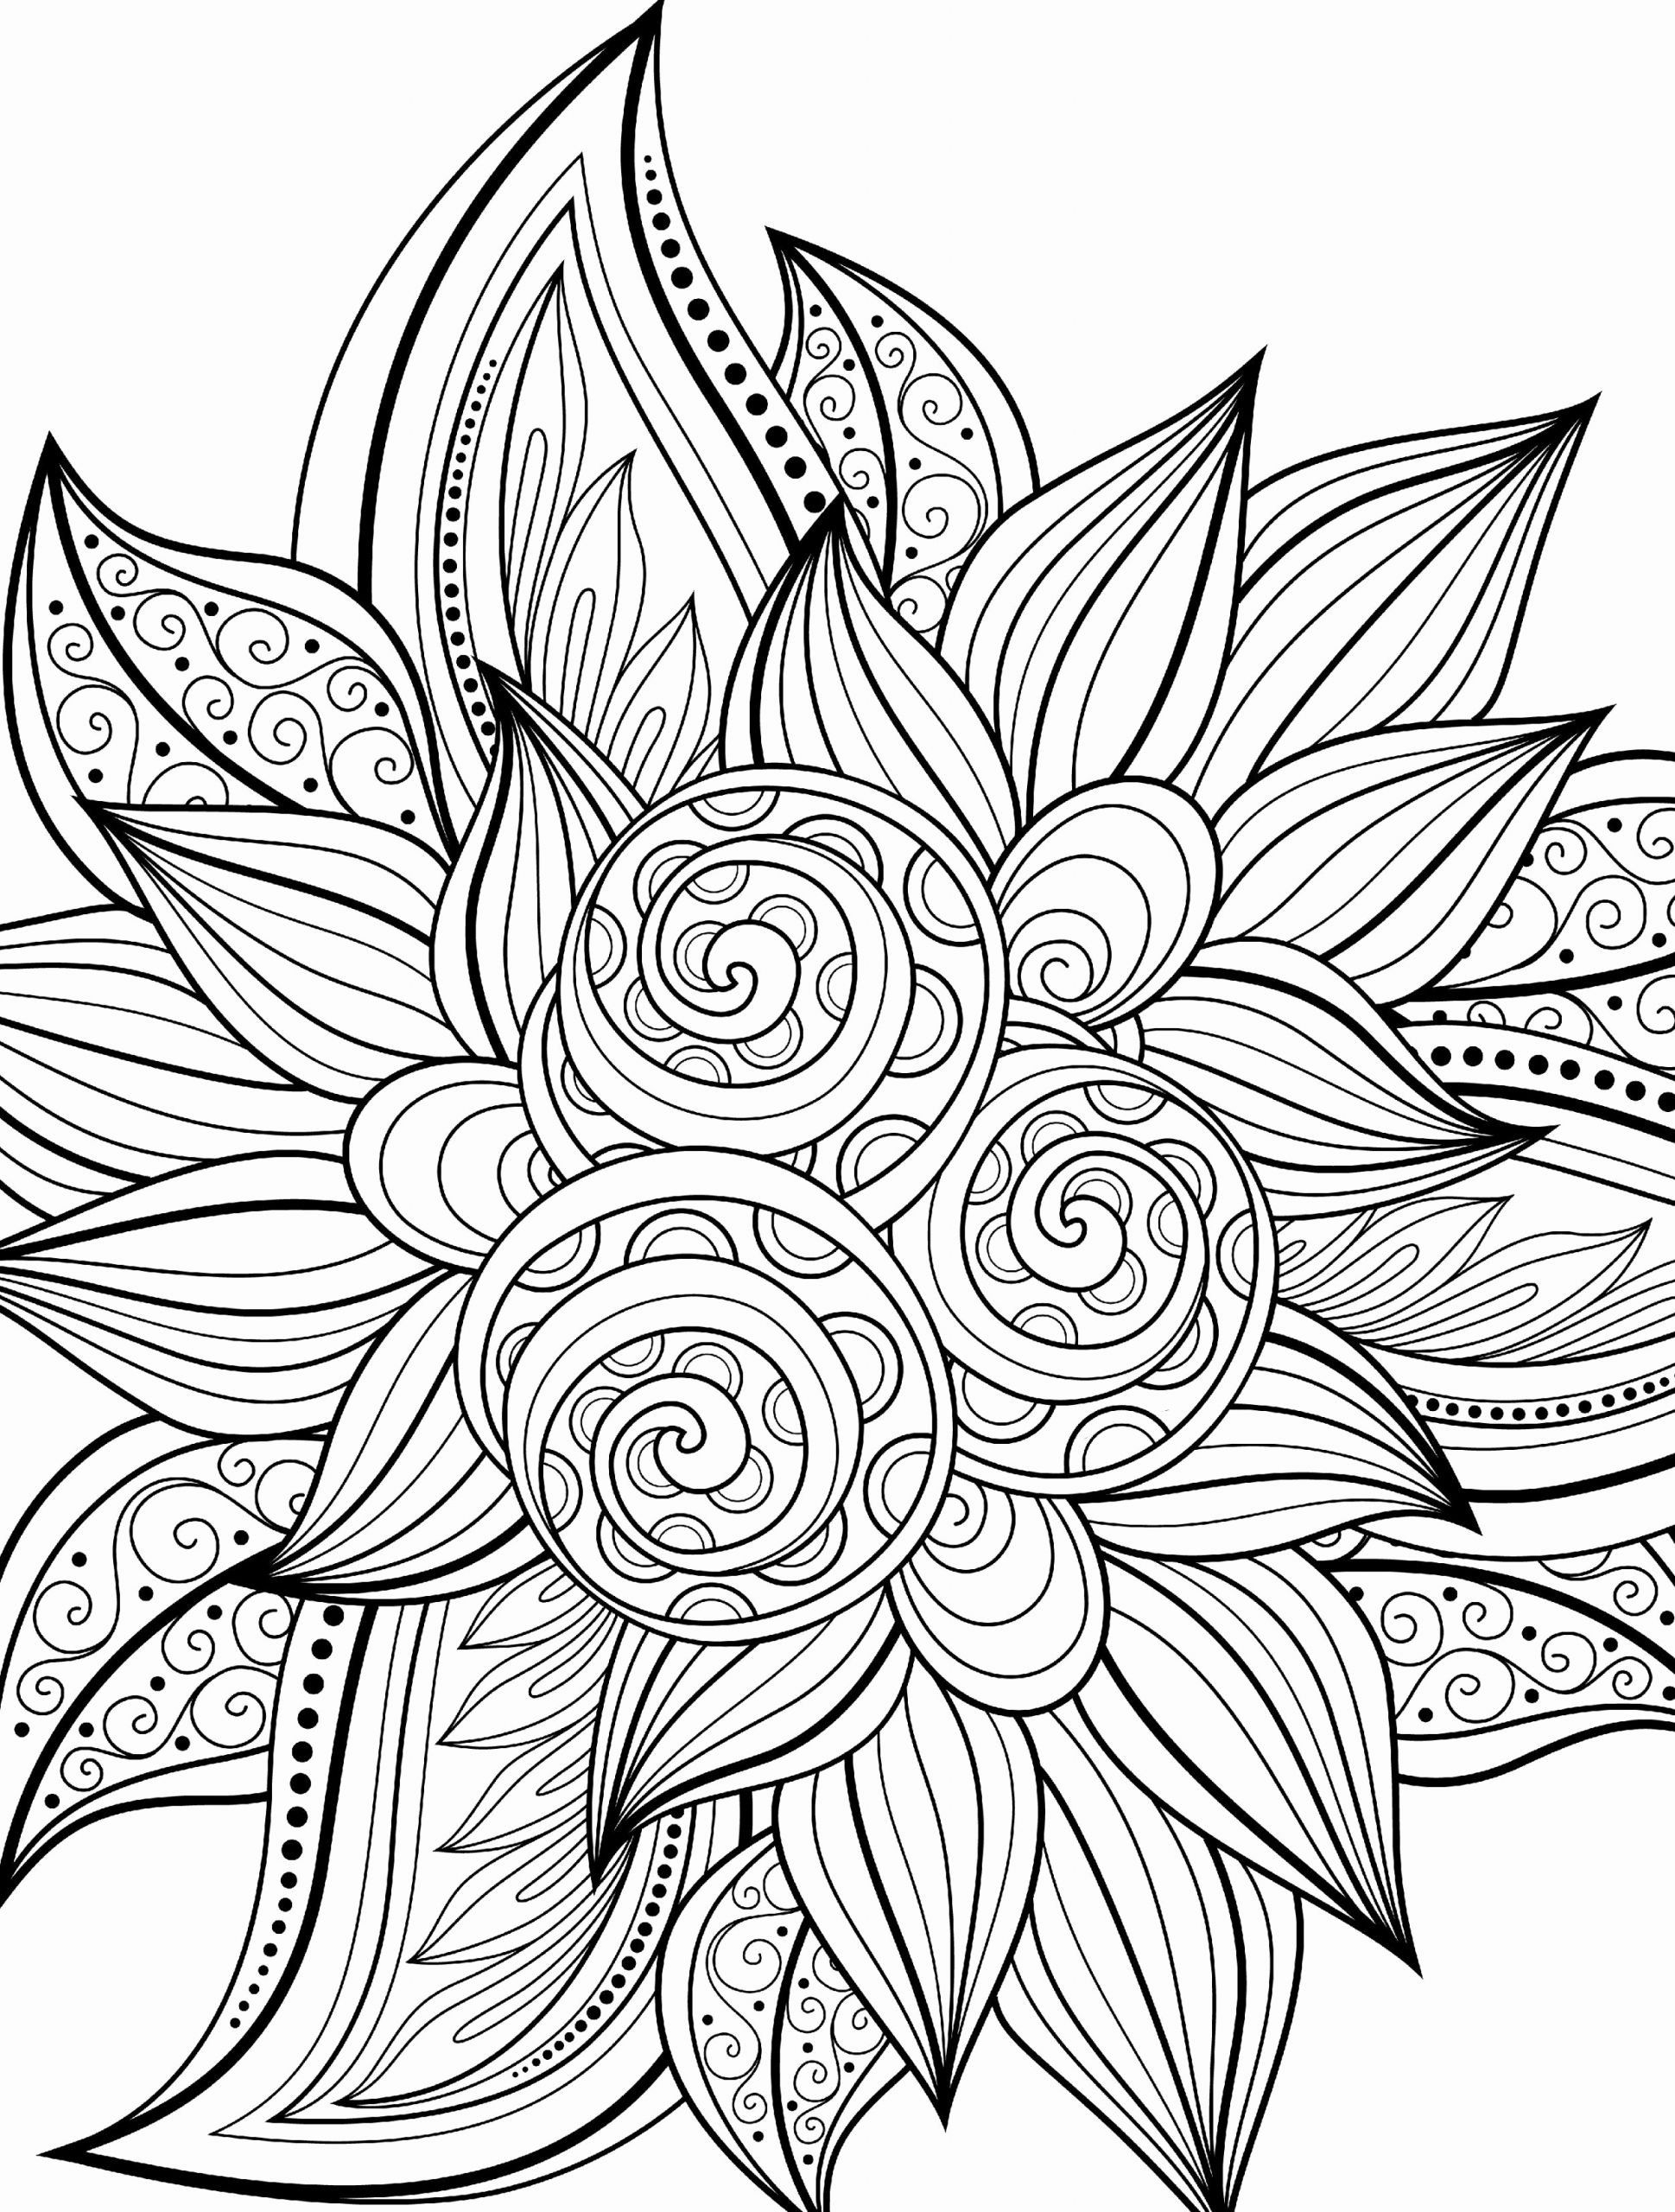 Cool Coloring Pages For Adults In 2020 Free Adult Coloring Pages Flower Coloring Pages Coloring Pages